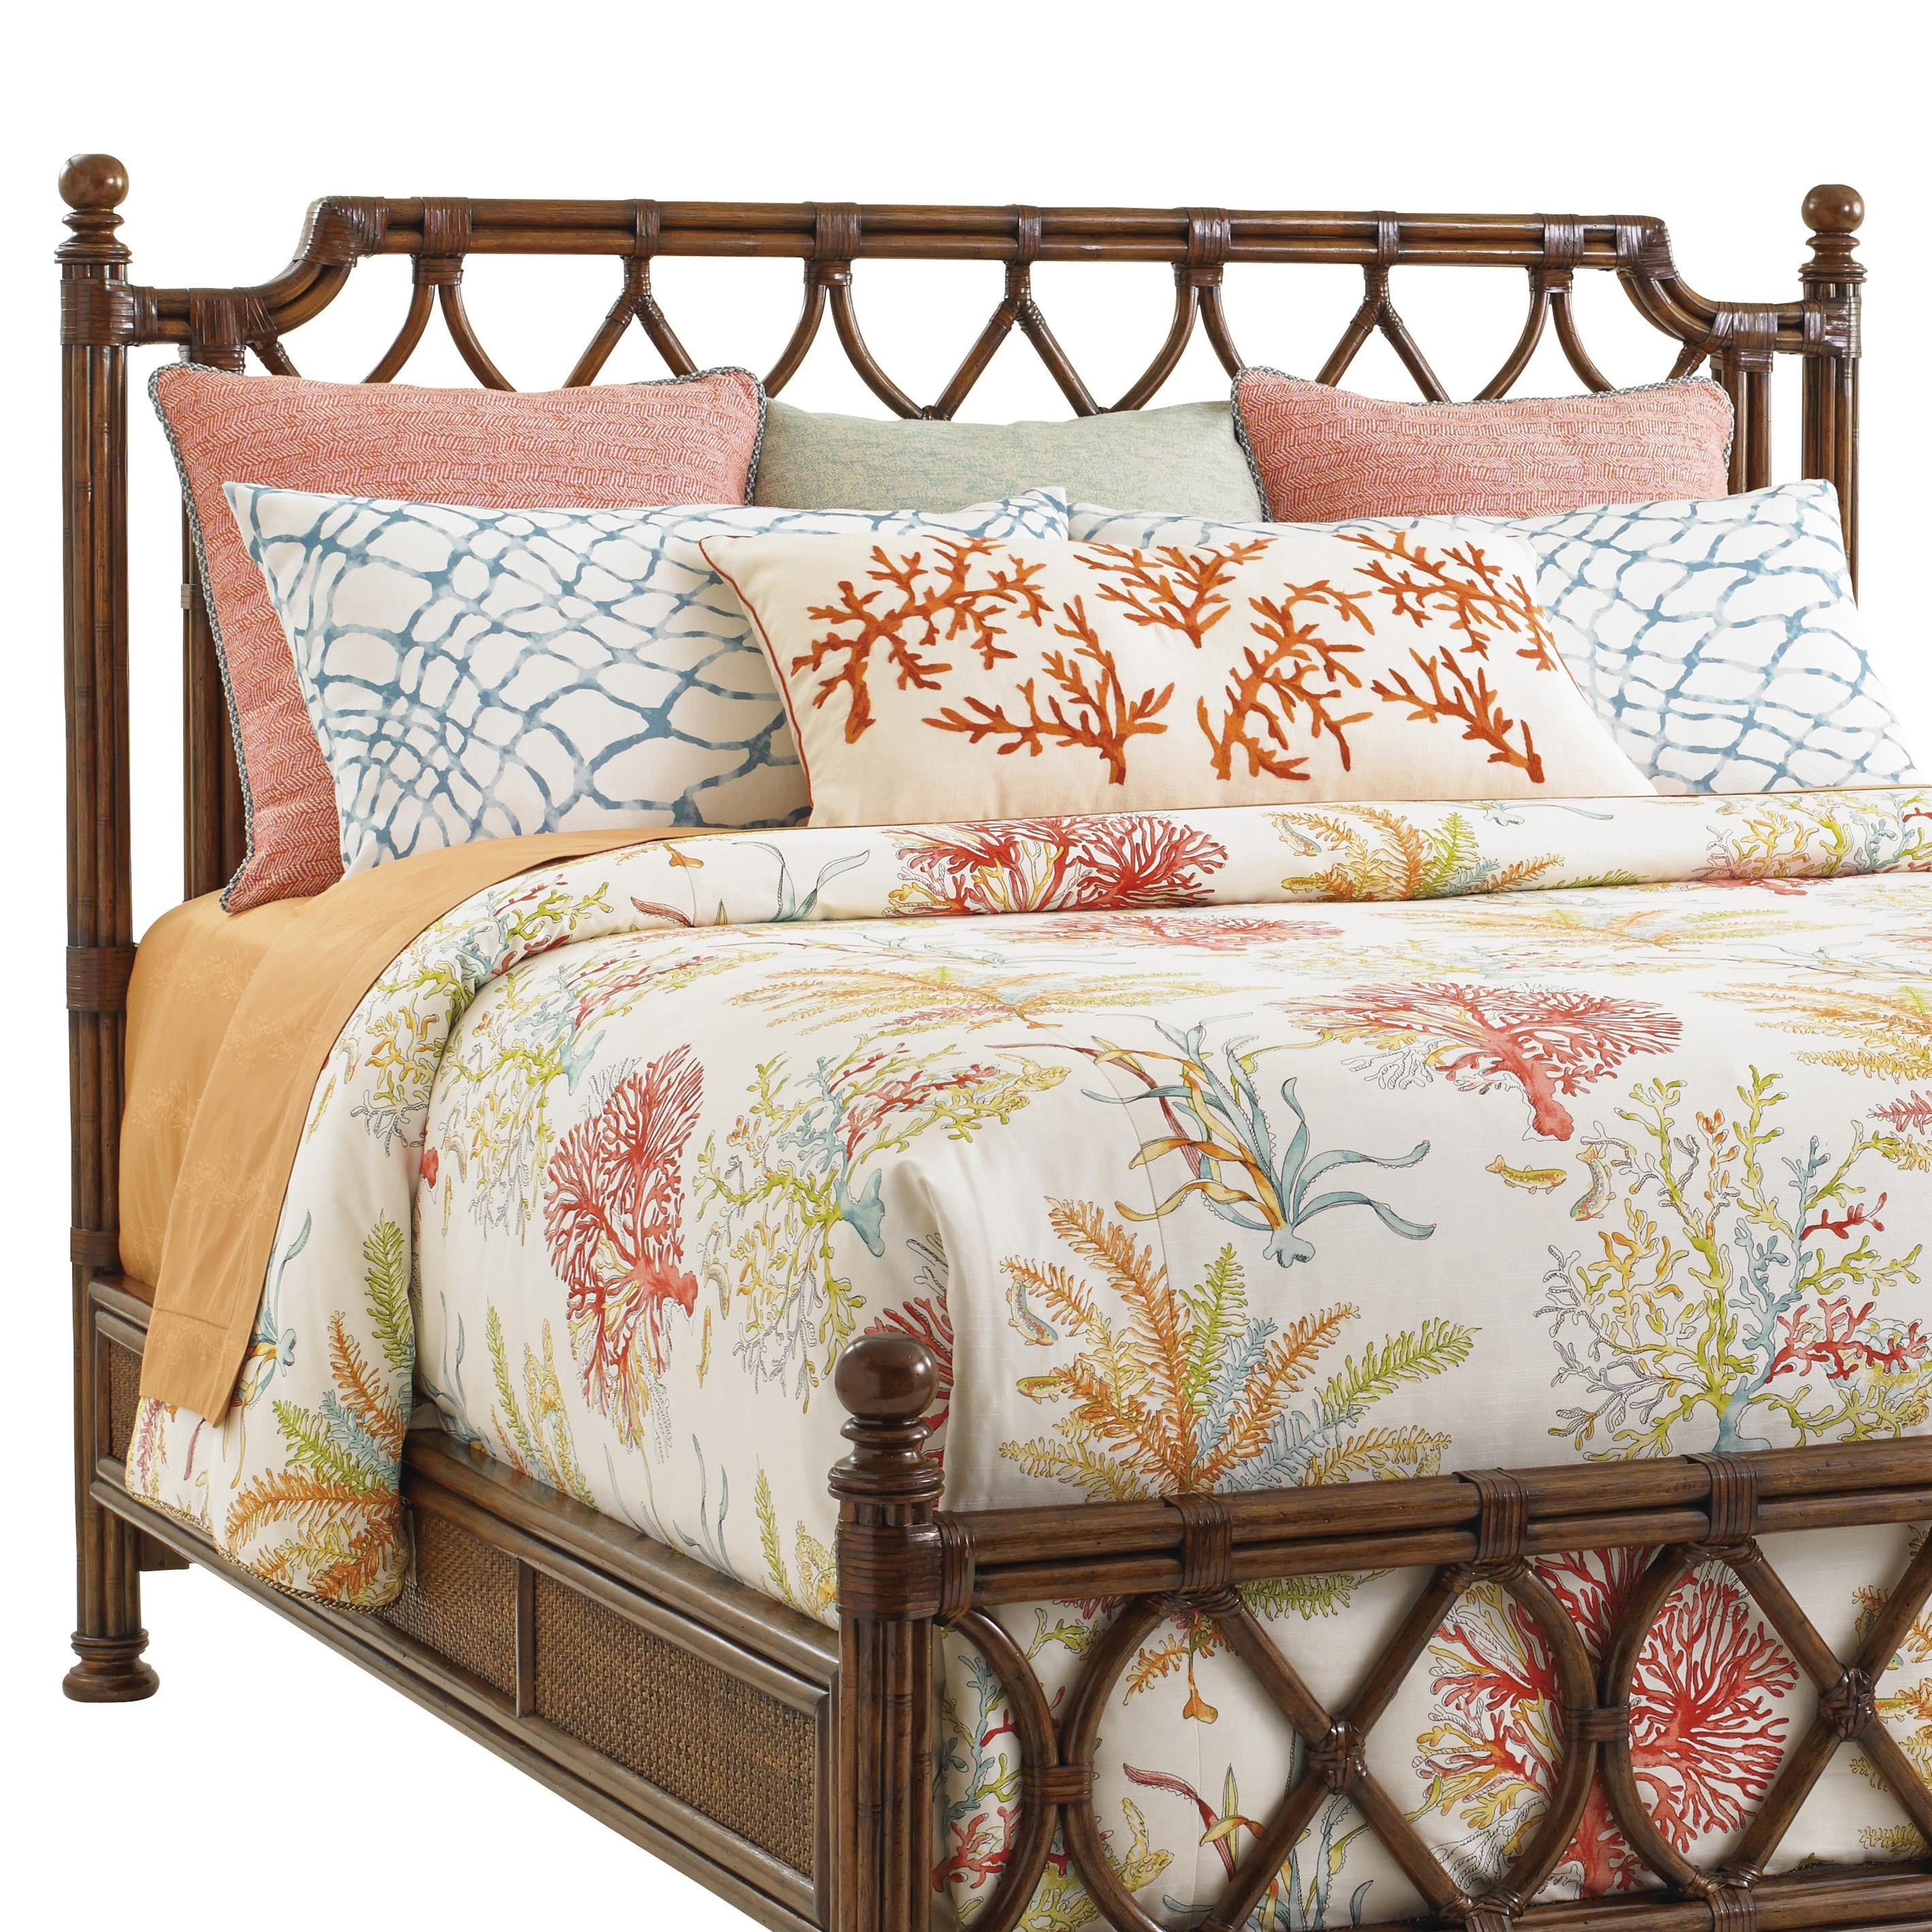 Tommy Bahama Home Bali Hai Queen Island Breeze Rattan Headboard Howell Furniture Headboards